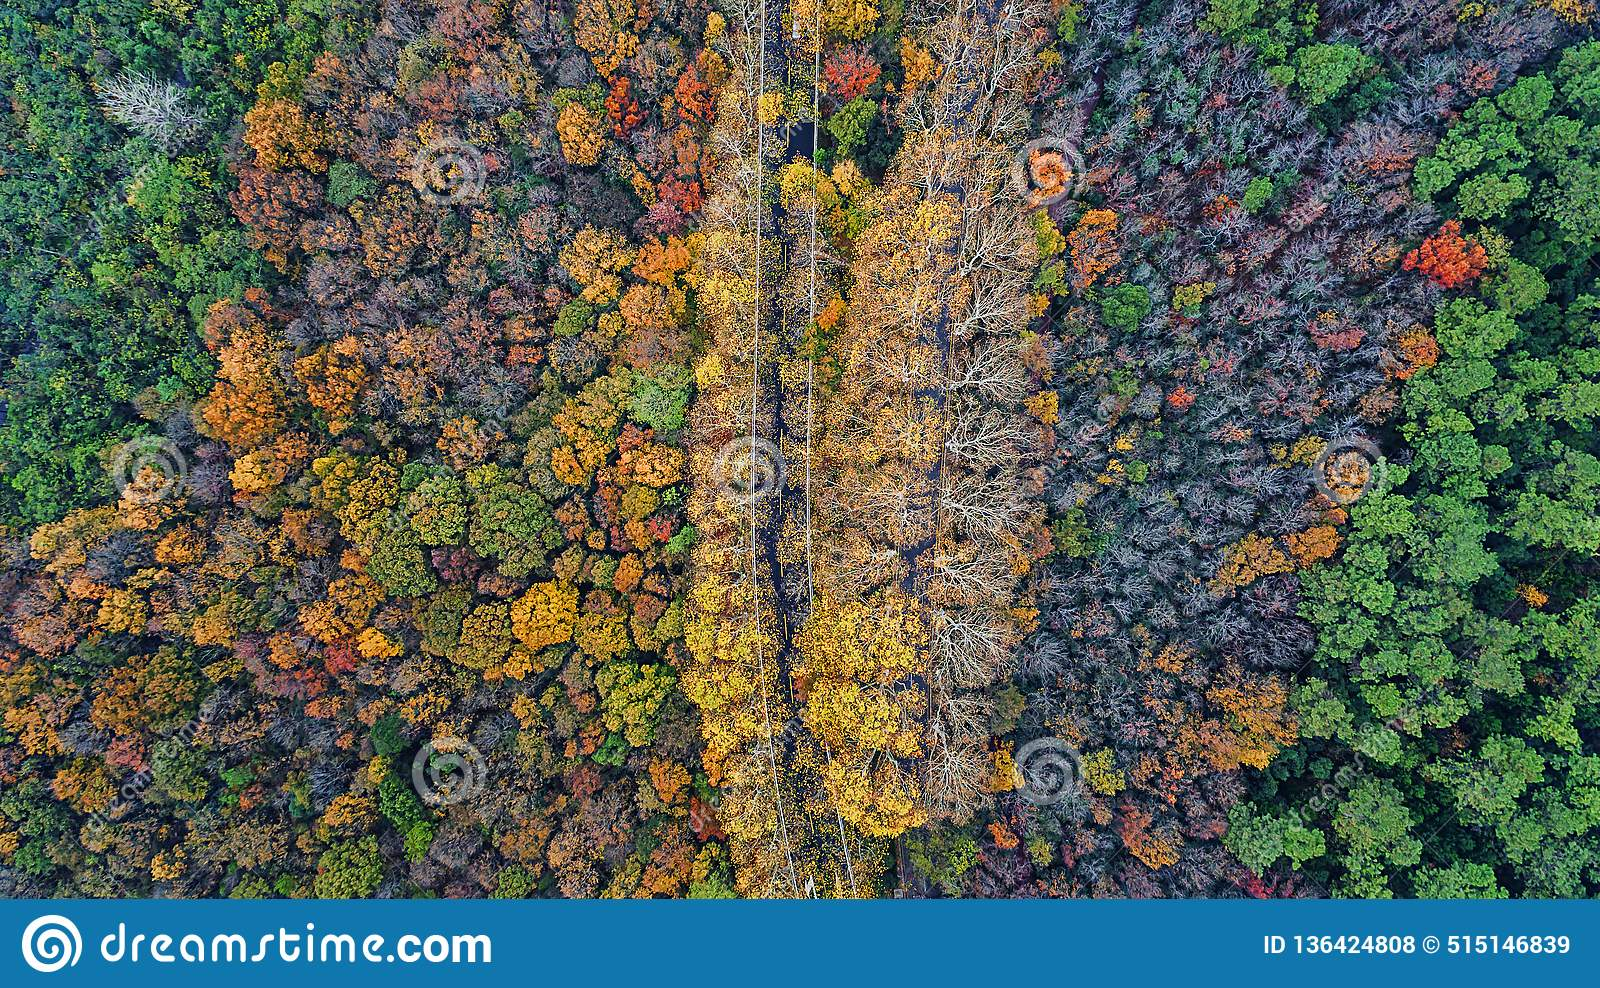 Aerial photography - botanical garden autumn scenery